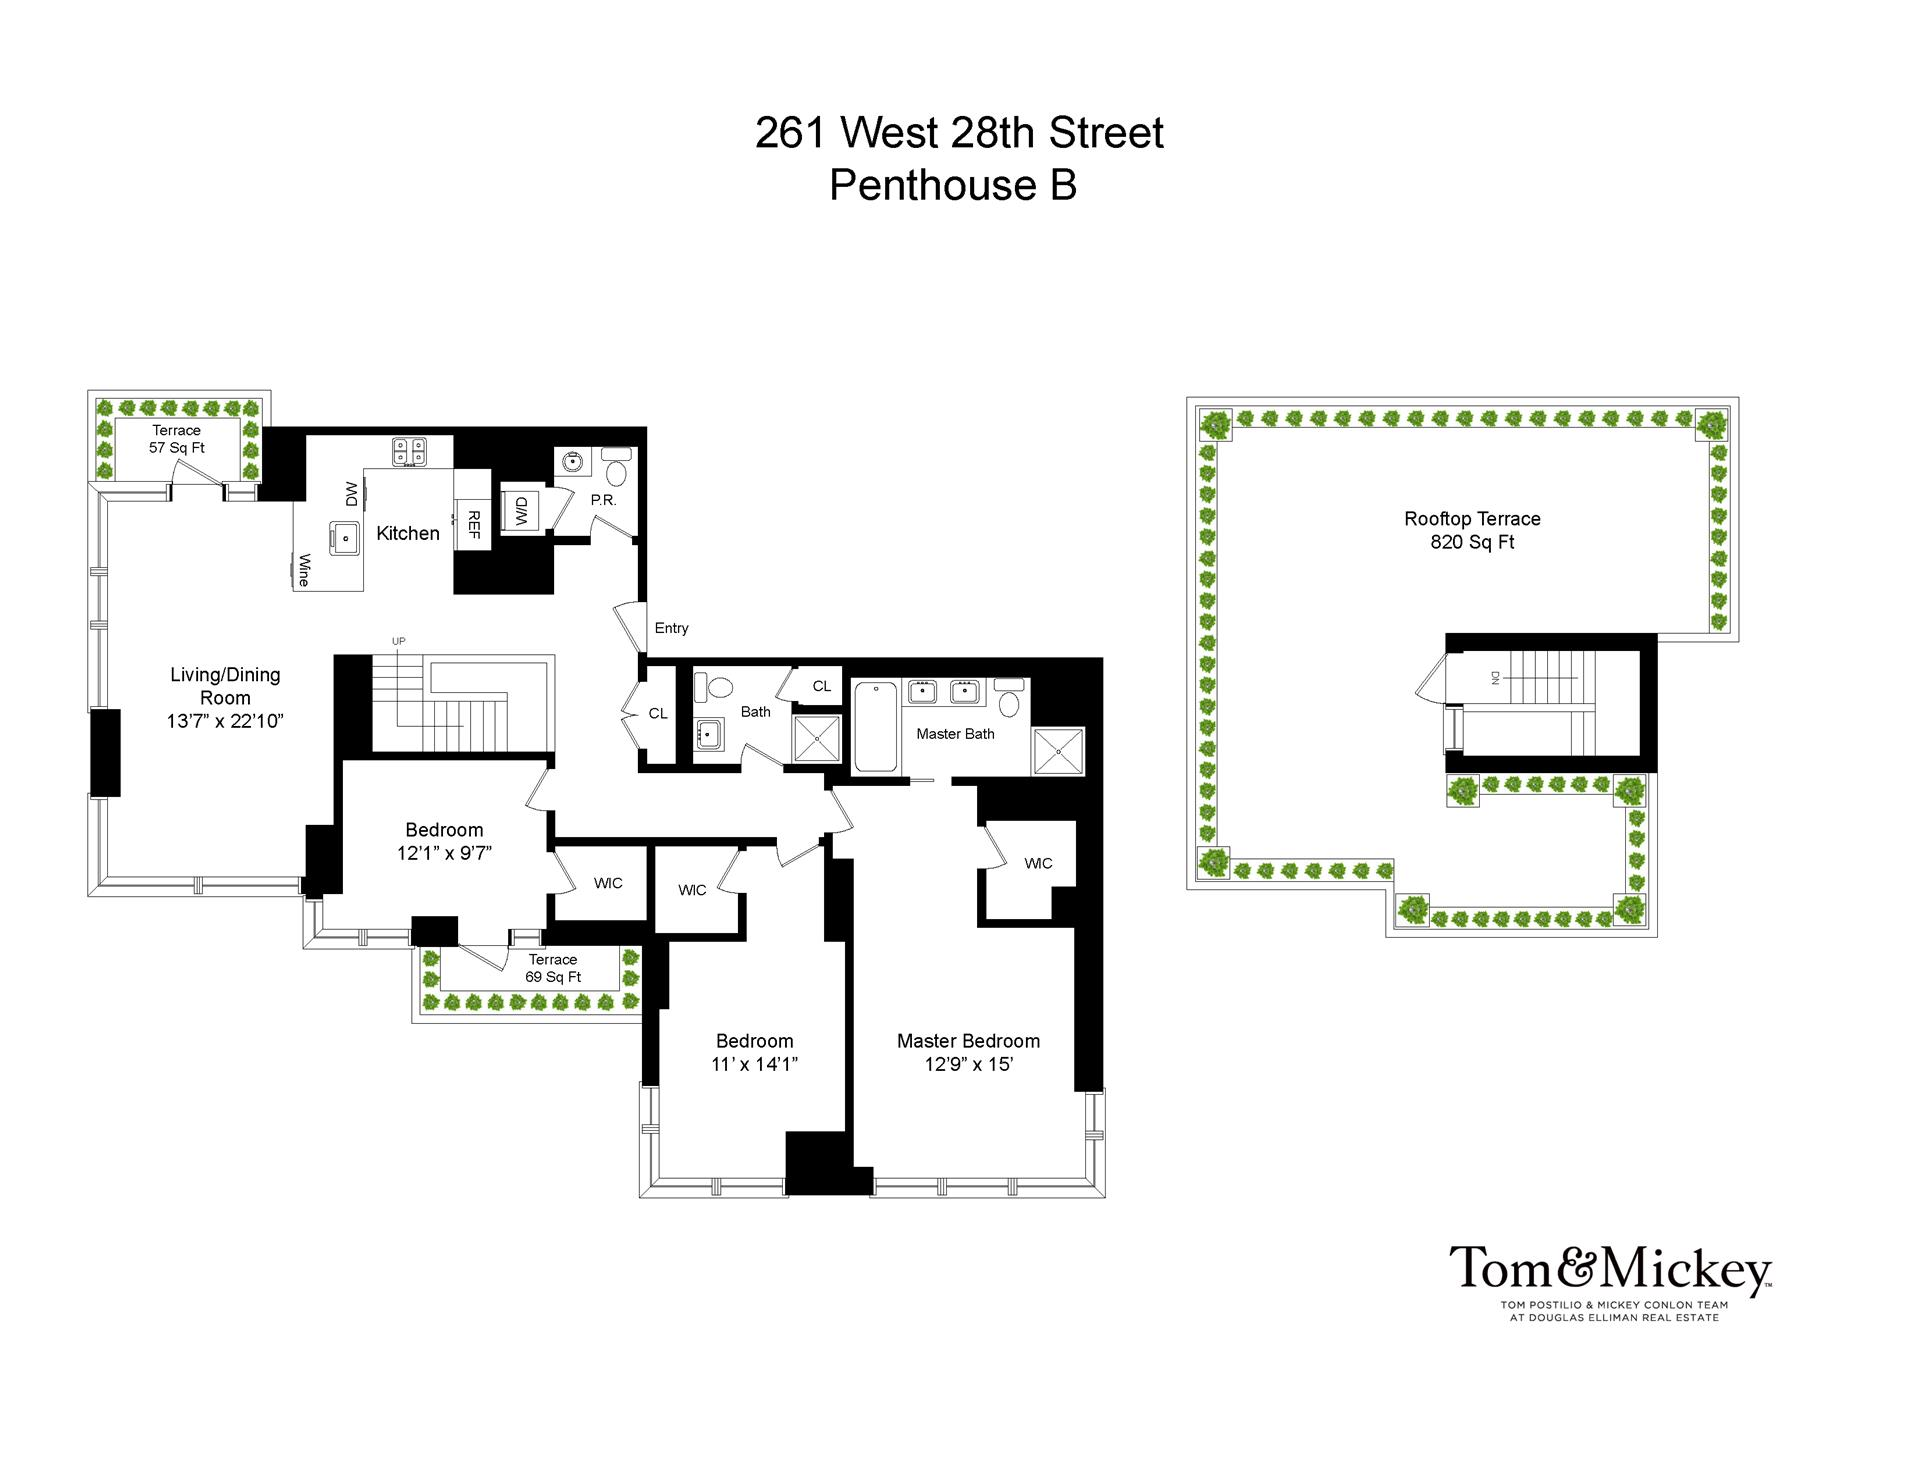 Floor plan of 261 West 28th St, PHB - Chelsea, New York